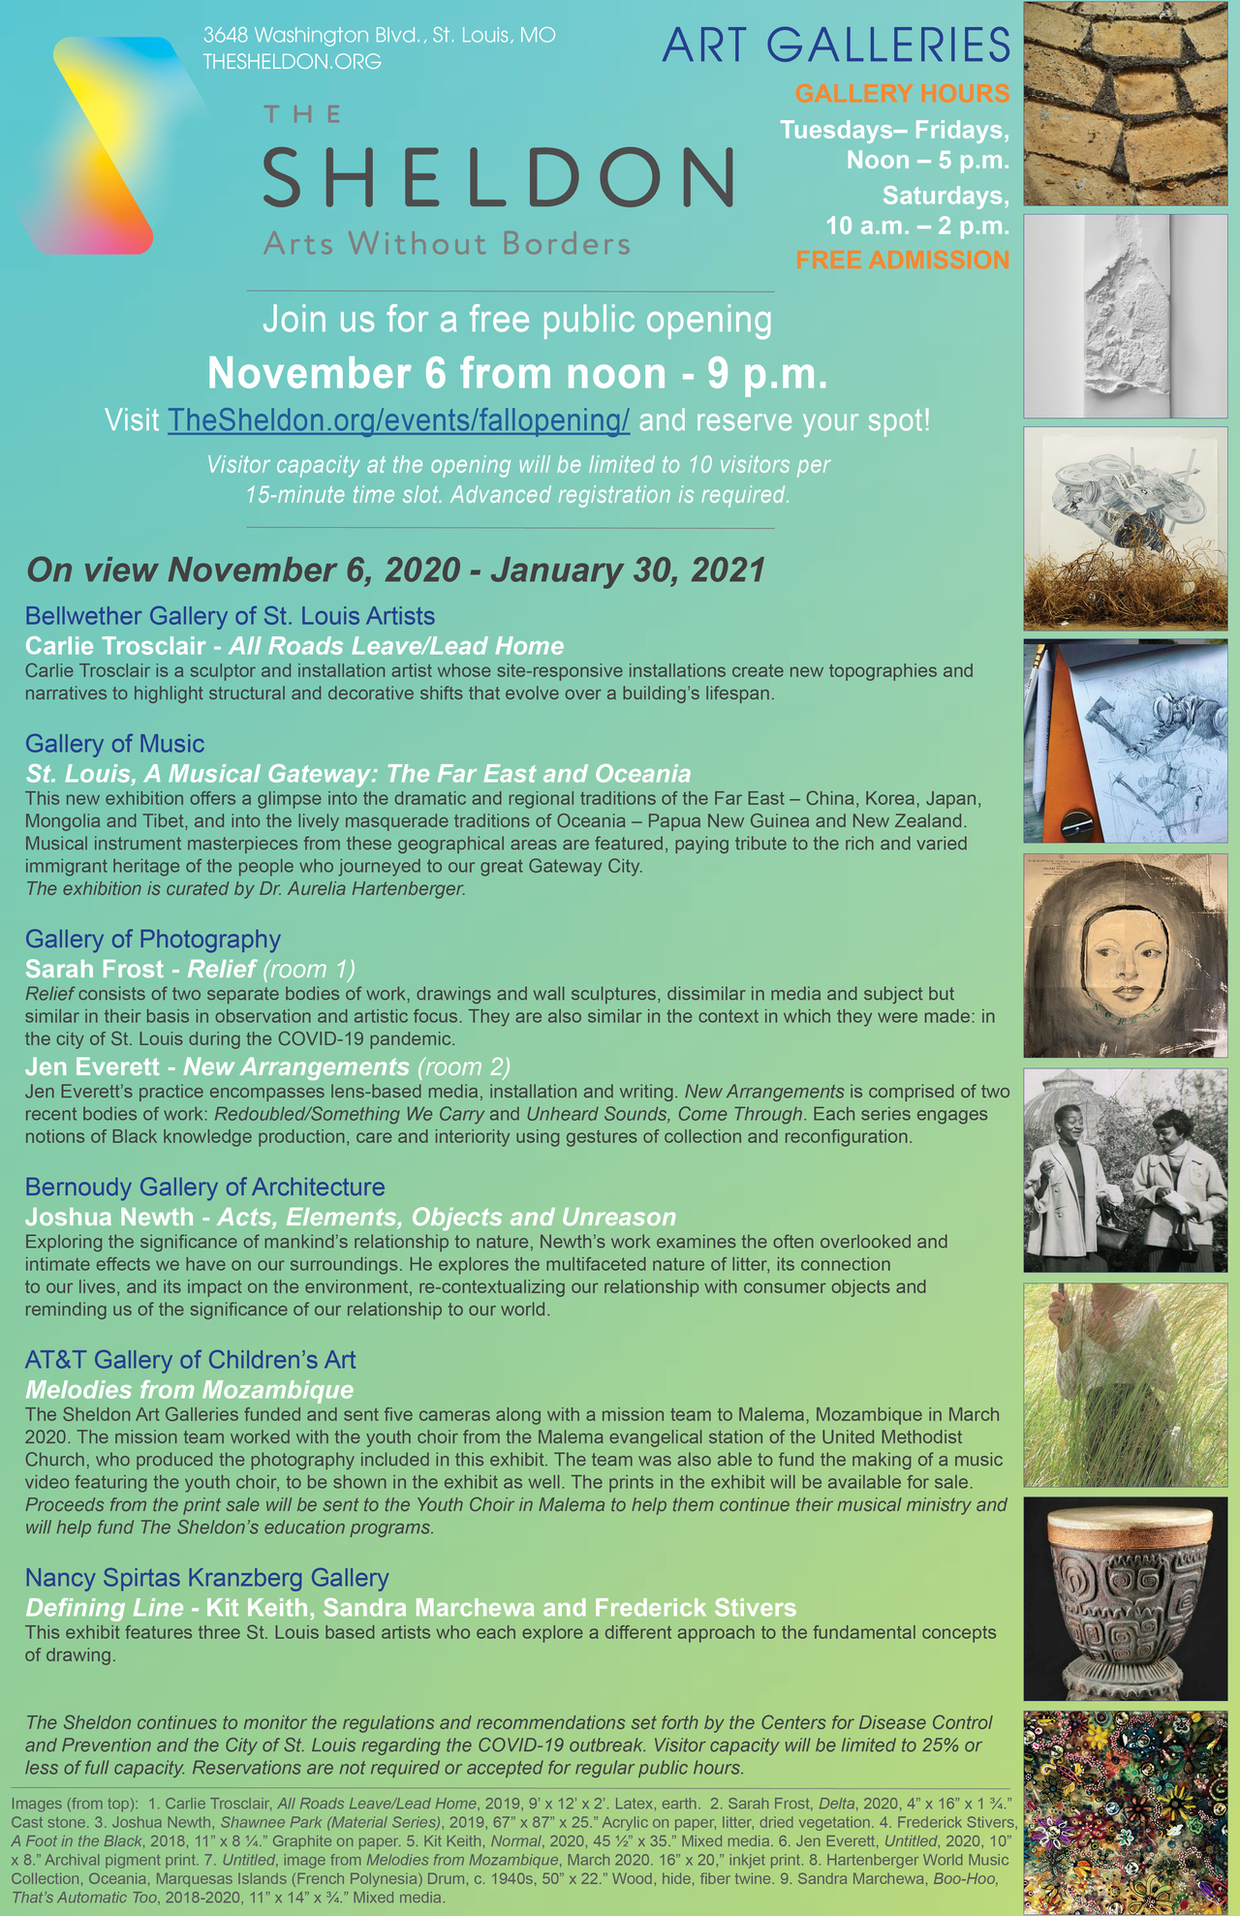 Join the Sheldon Art Galleries for a free public gallery opening on November 6, noon - 9 p.m. Visit The Sheldon.org/events/fallopening and reserve your spot!